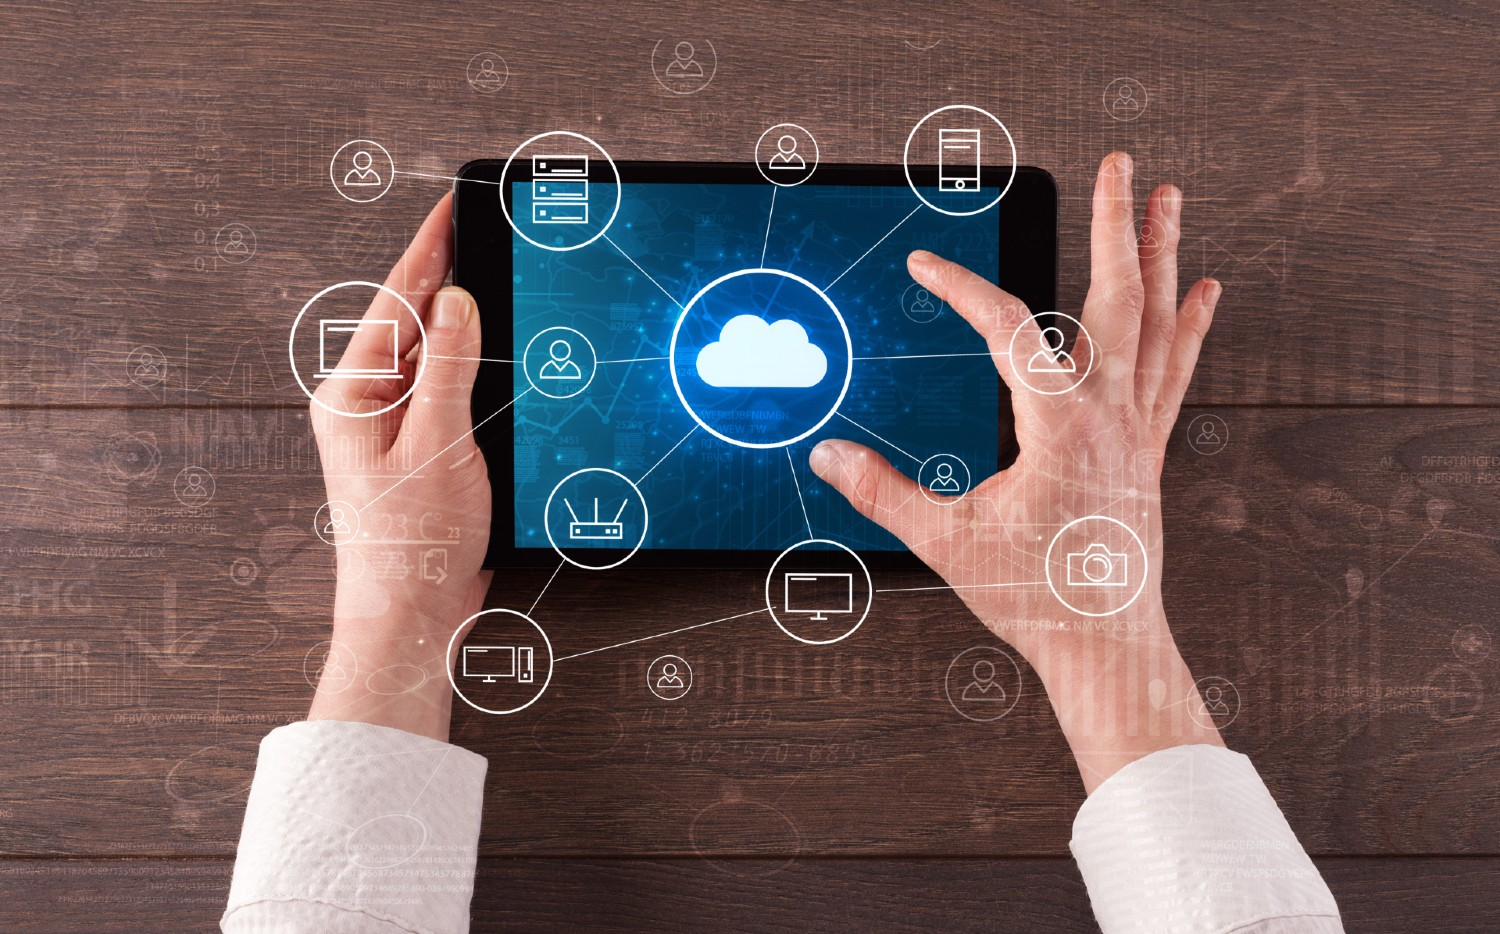 Two Hands Looking at Cloud Applications on a Tablet